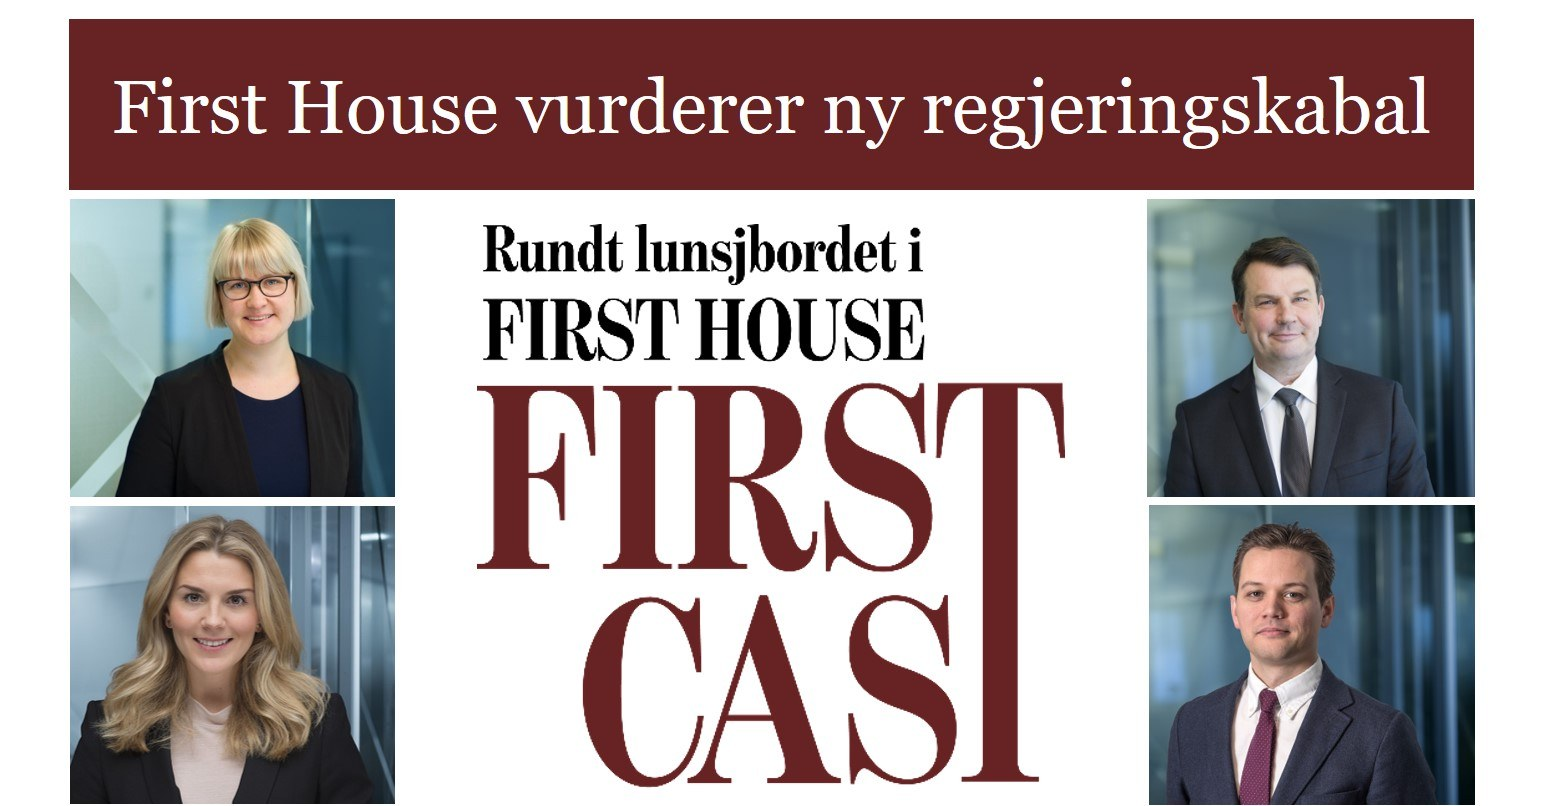 First Cast 17.01.18 - First House vurderer ny regjeringskabal